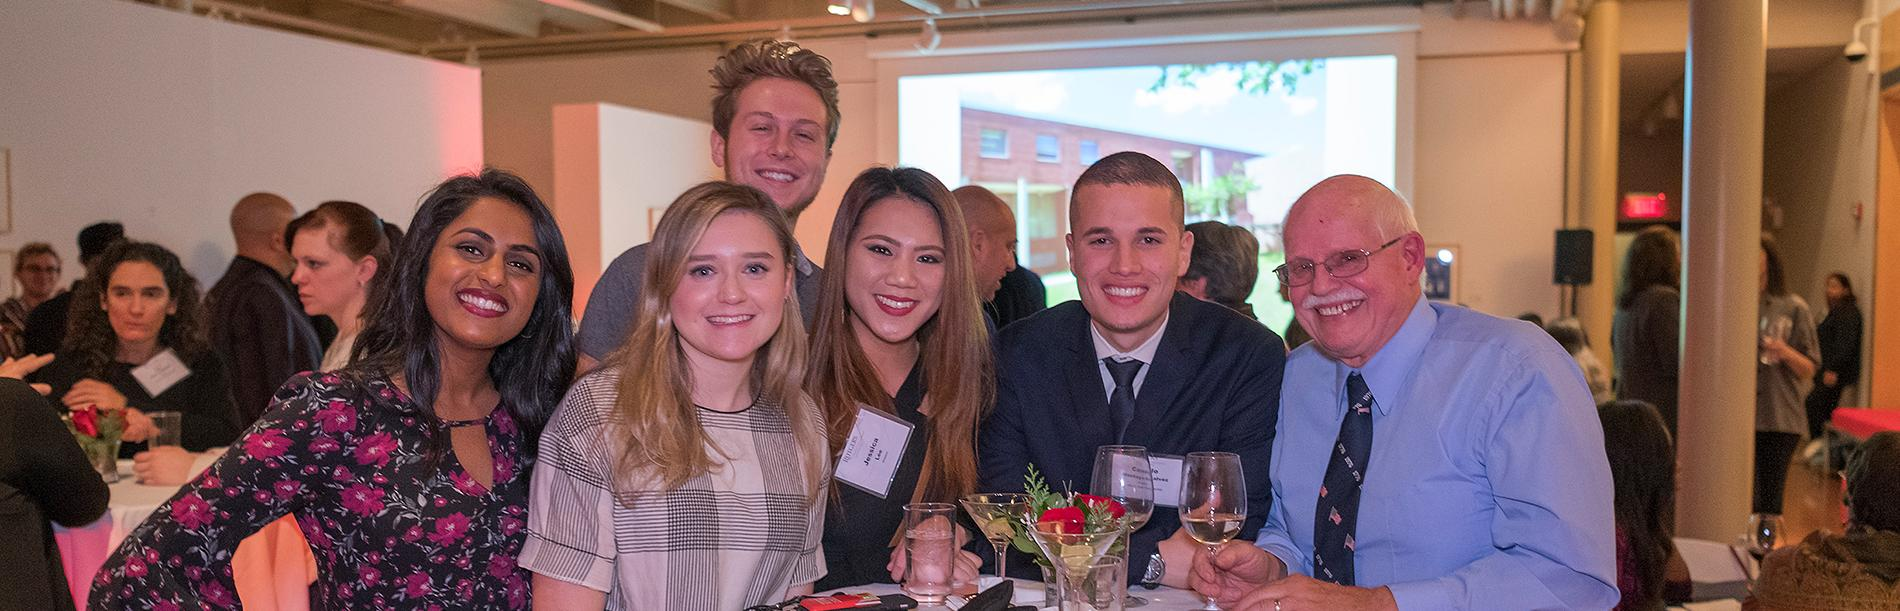 Scholarship event - Rutgers School of Communication and Information Alumni